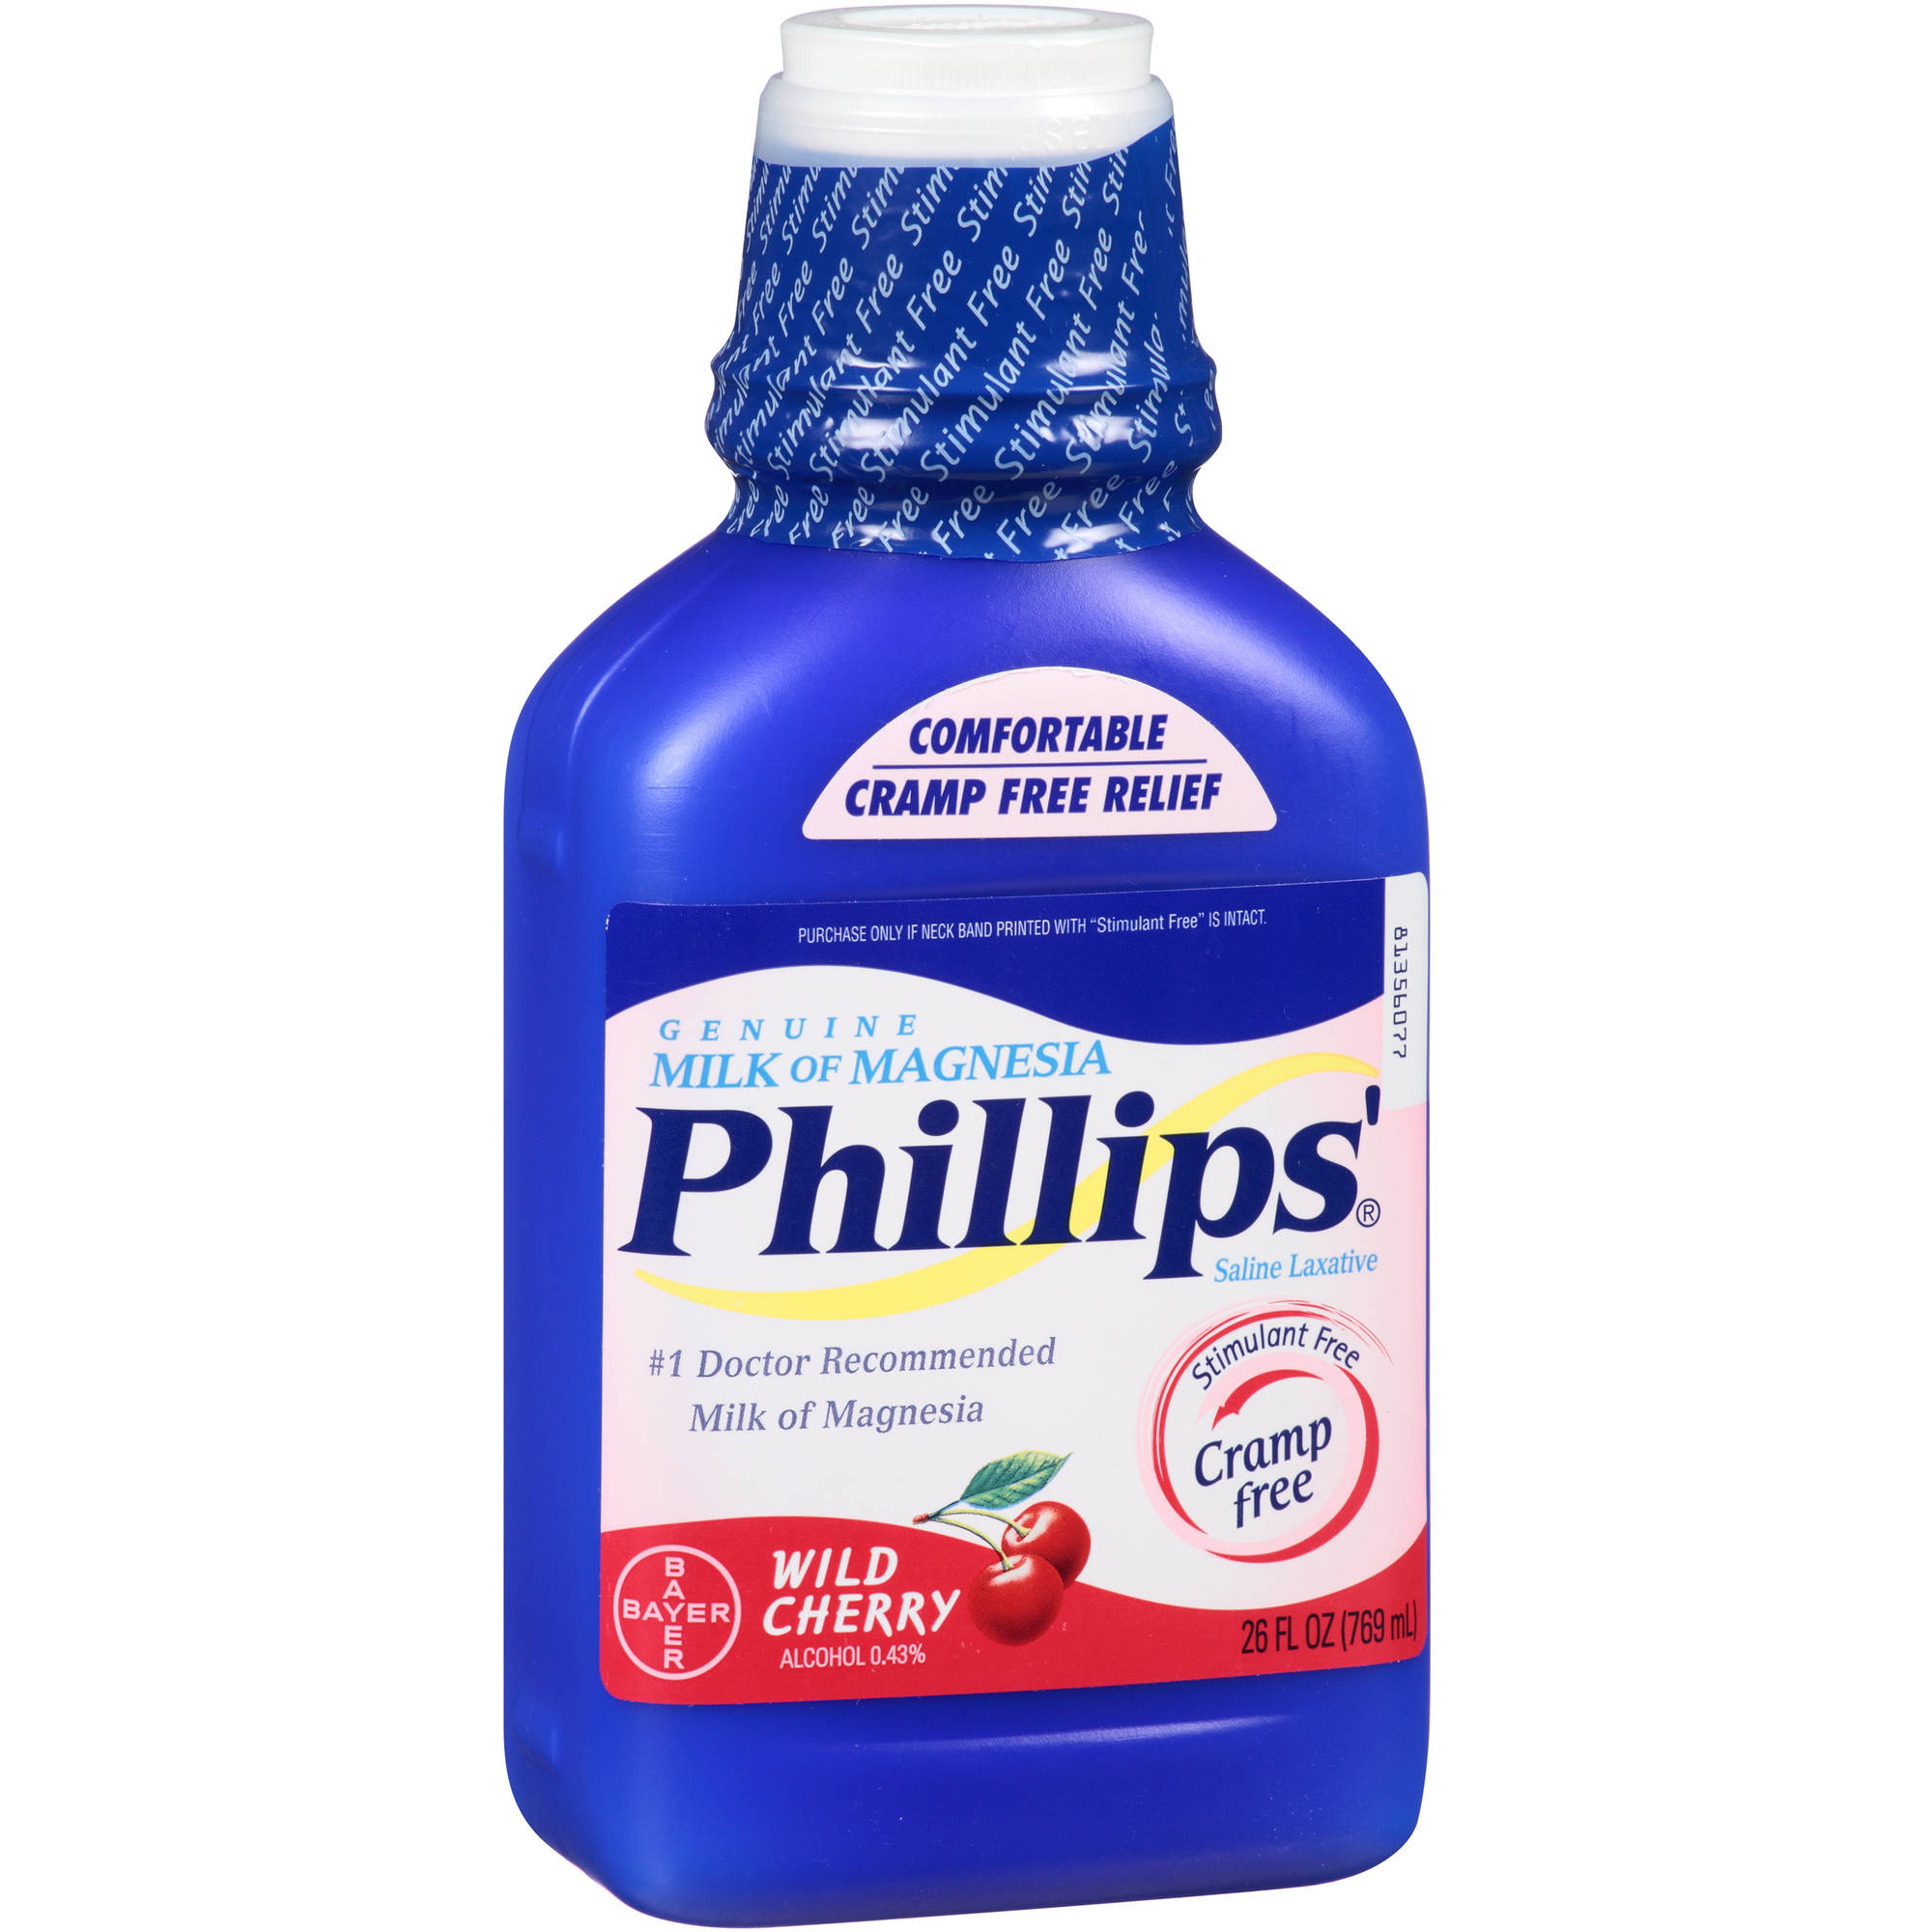 Phillips' Genuine Milk of Magnesia Wild Cherry Saline Laxative Liquid, 26 fl oz